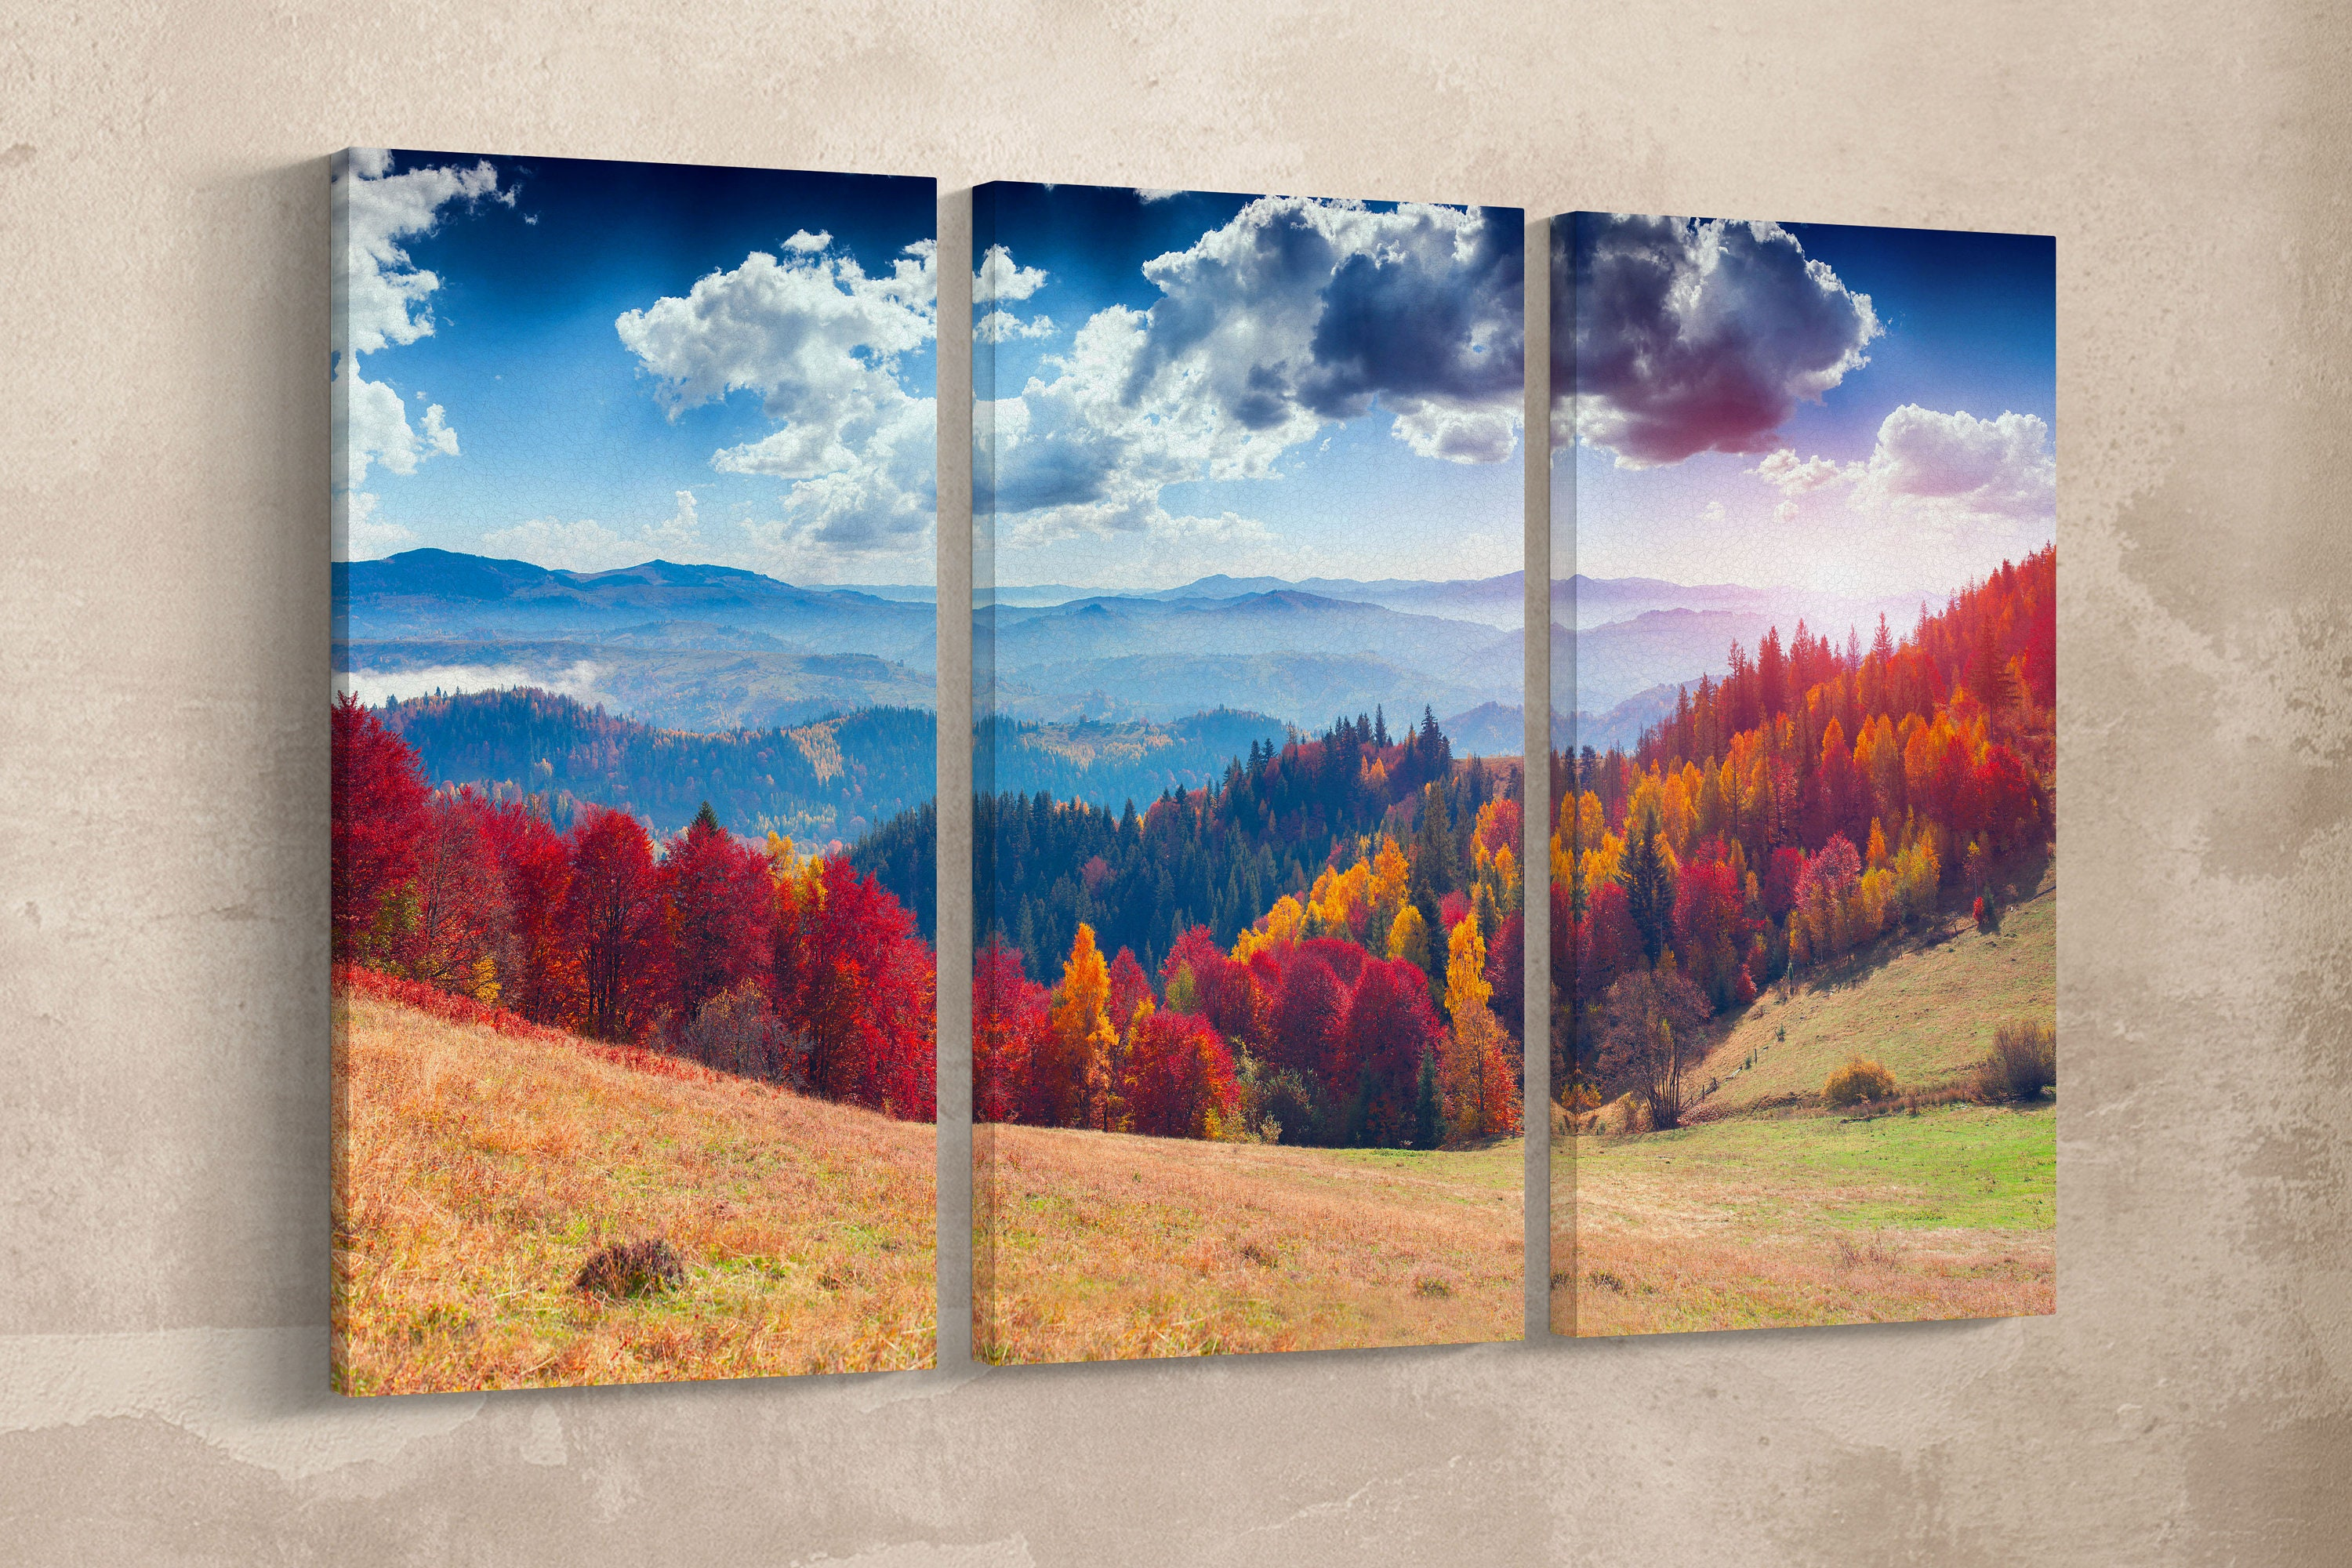 Autumn Mountain Framed Canvas Leather Print Mountain Print Autumn Wall Art Autumn Trees Large Wall Art Made In Italy Better Than Canvas